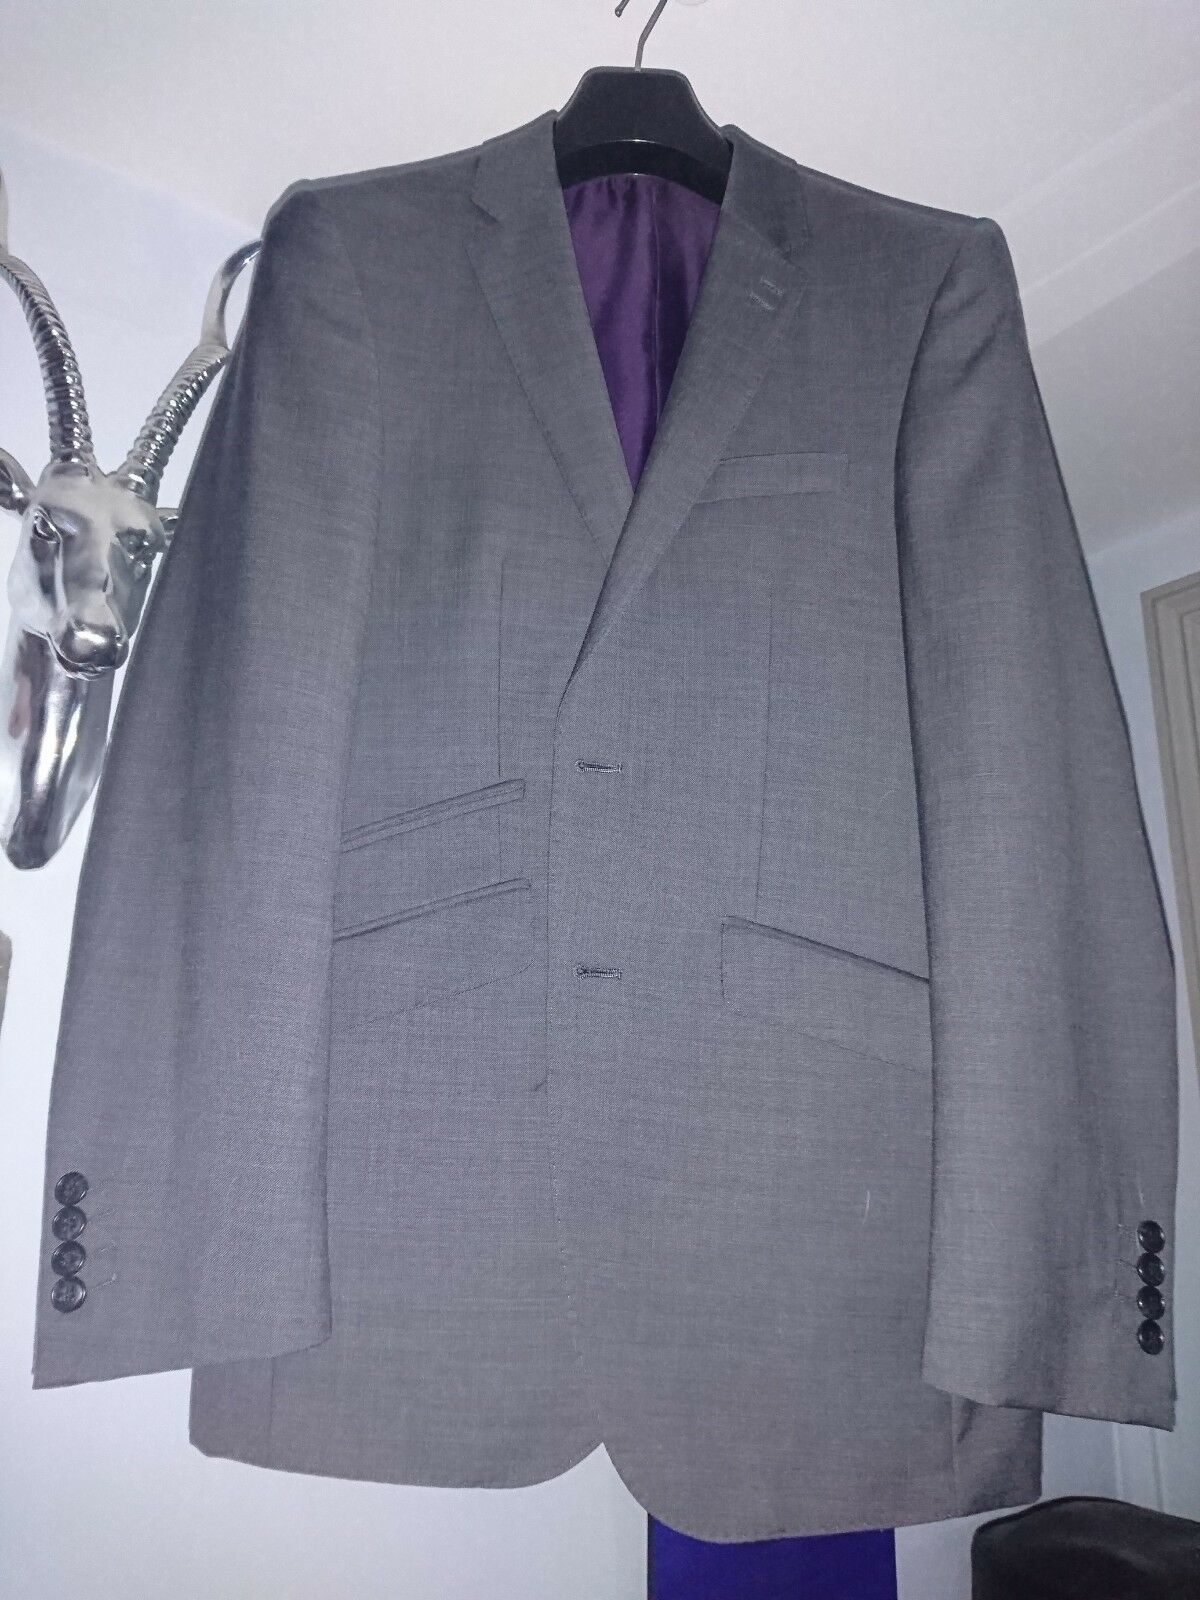 Marks & Spencer Collection Grey Suit Worn Once